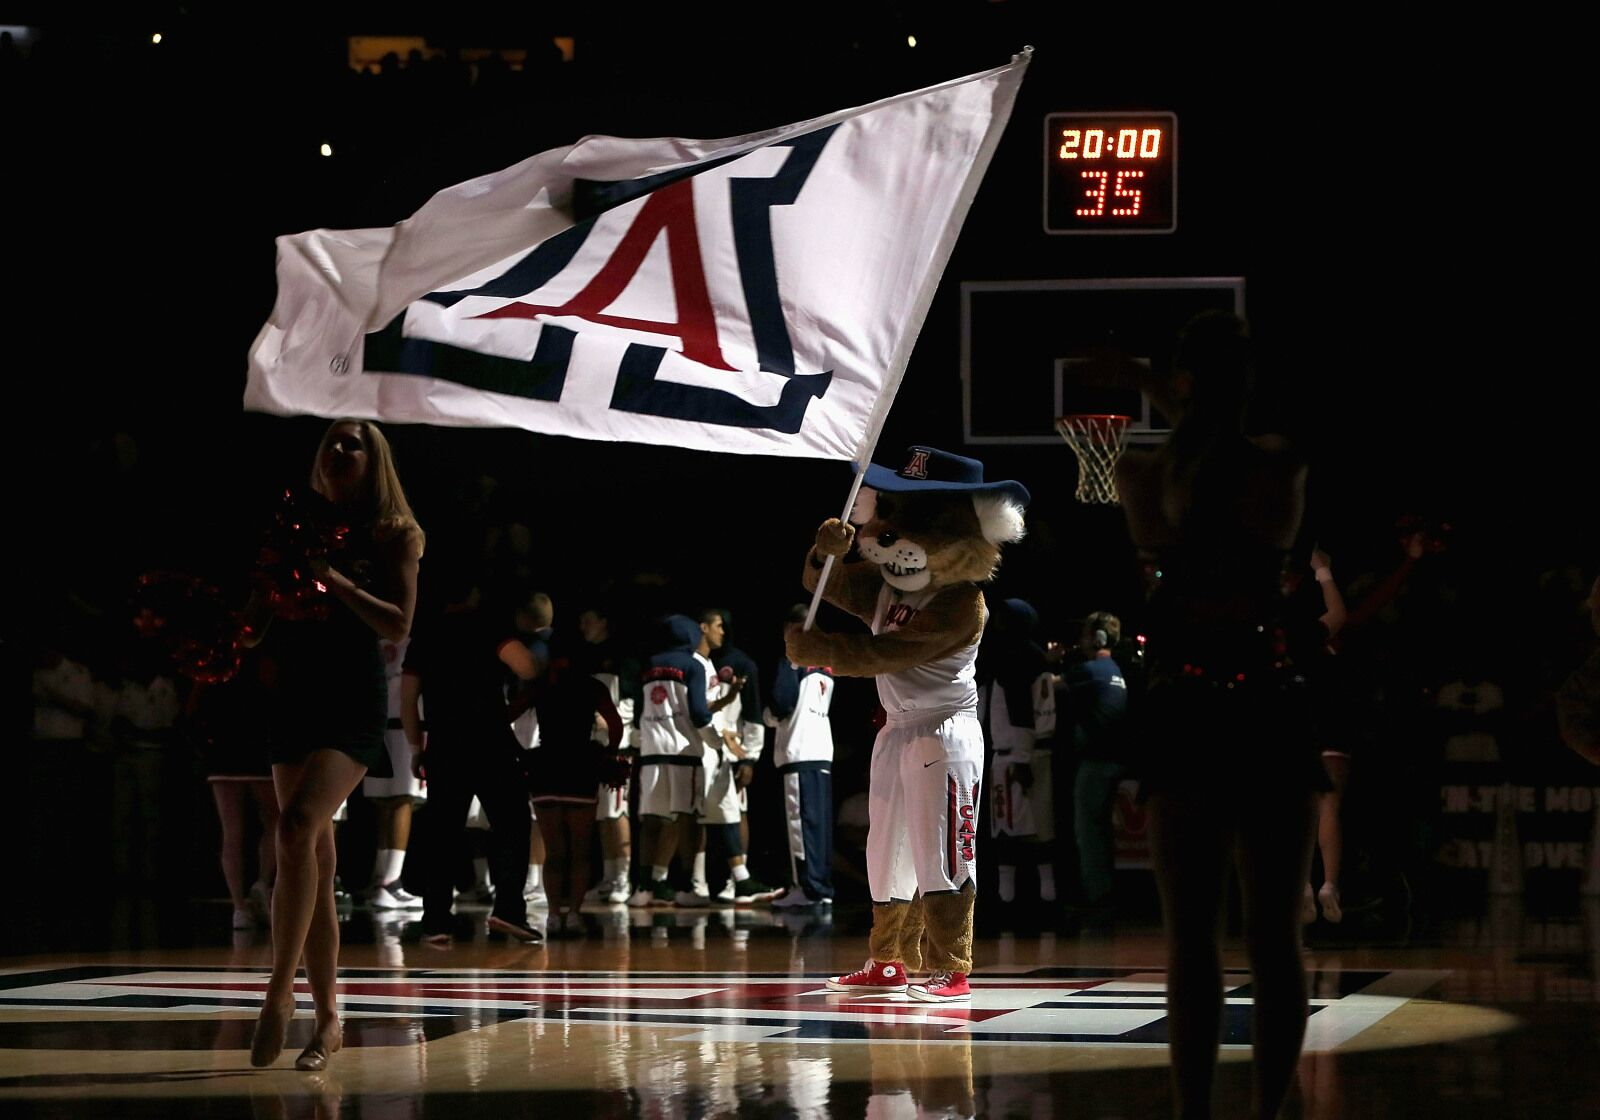 Arizona Basketball: 15-year-old phenom Sadraque Nganga receives offer